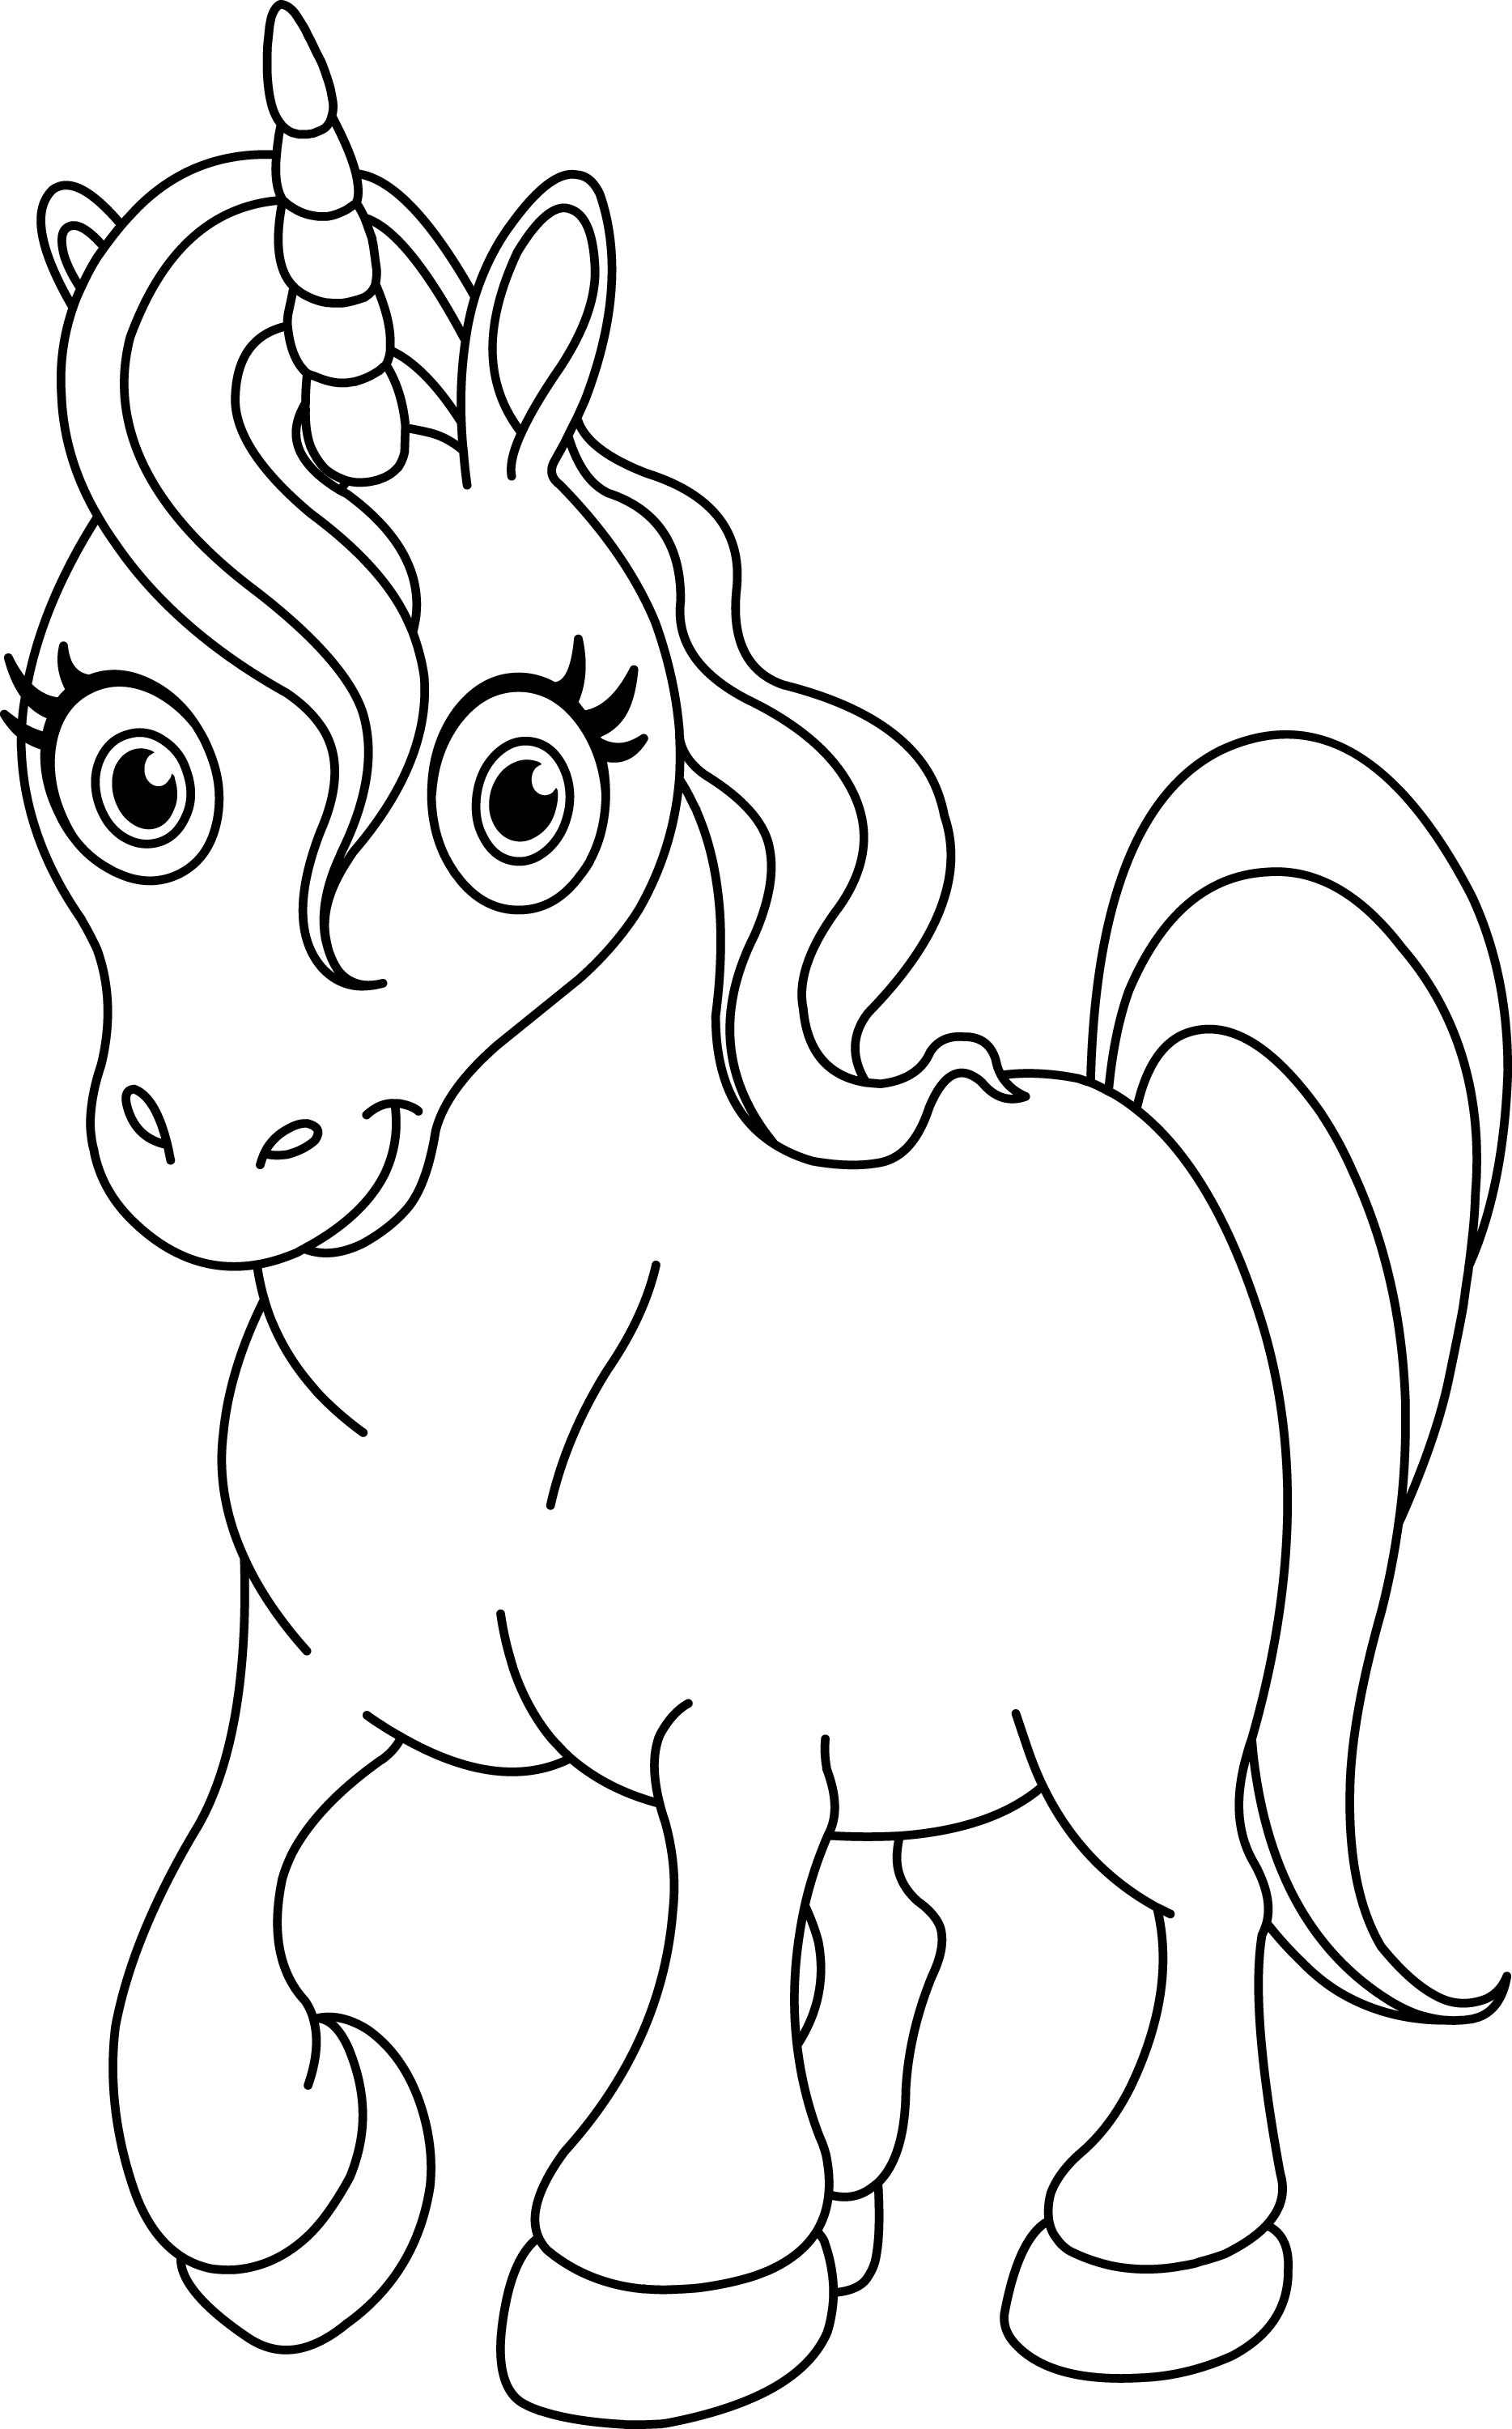 coloring picture unicorn free printable coloring pages for girls unicorn coloring picture